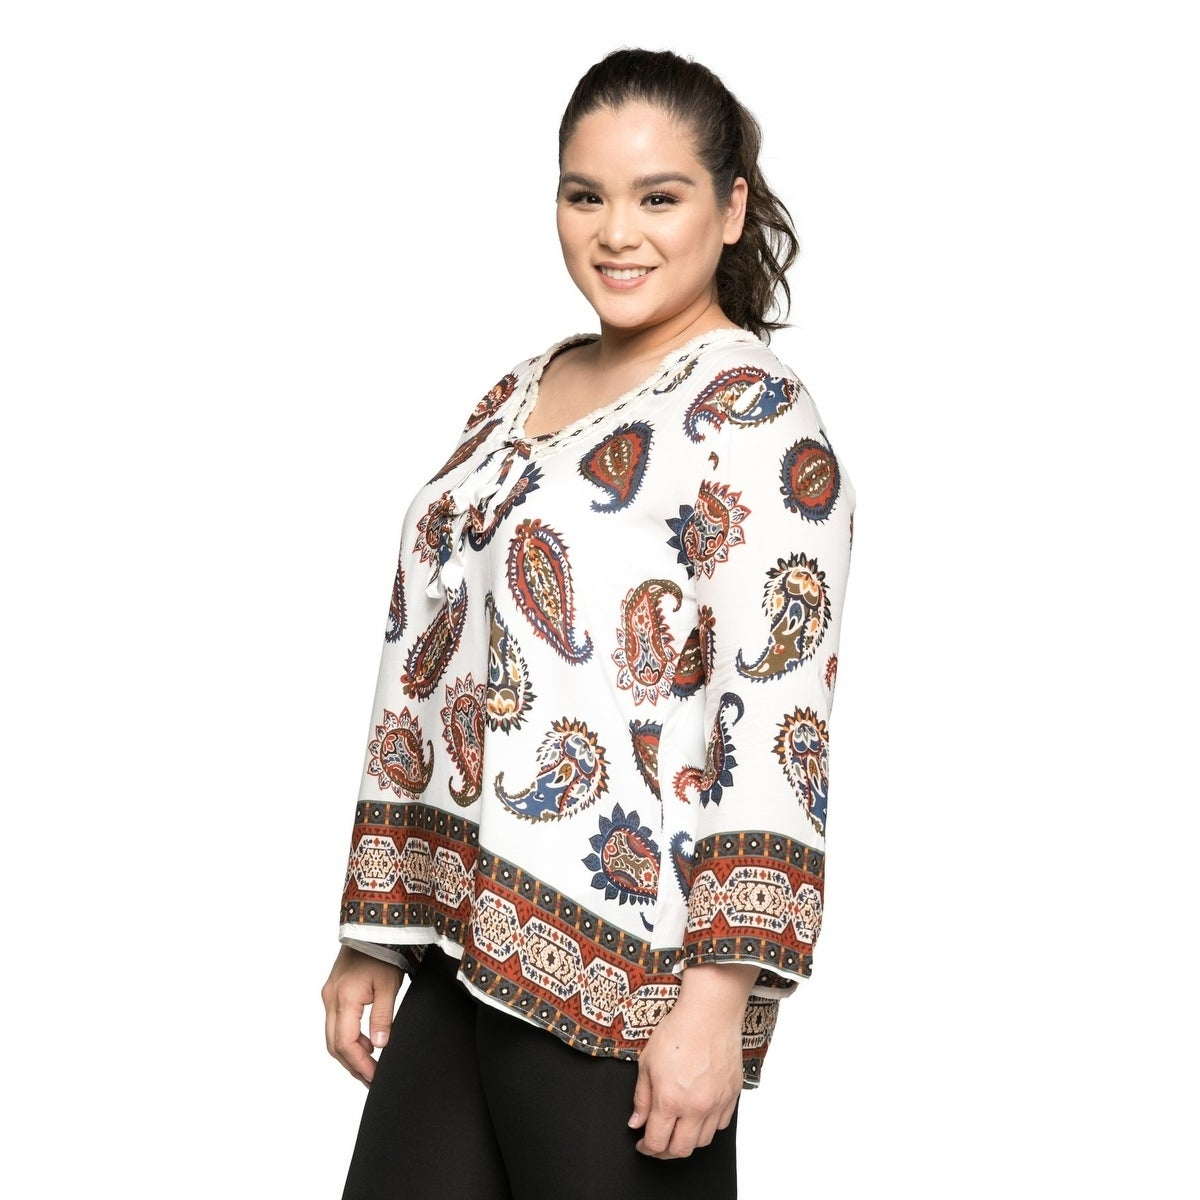 8235df097ee Shop Xehar Women's Plus Size Casual V-Neck Paisley Printed Boho Blouse Top  - Free Shipping On Orders Over $45 - Overstock - 20529681